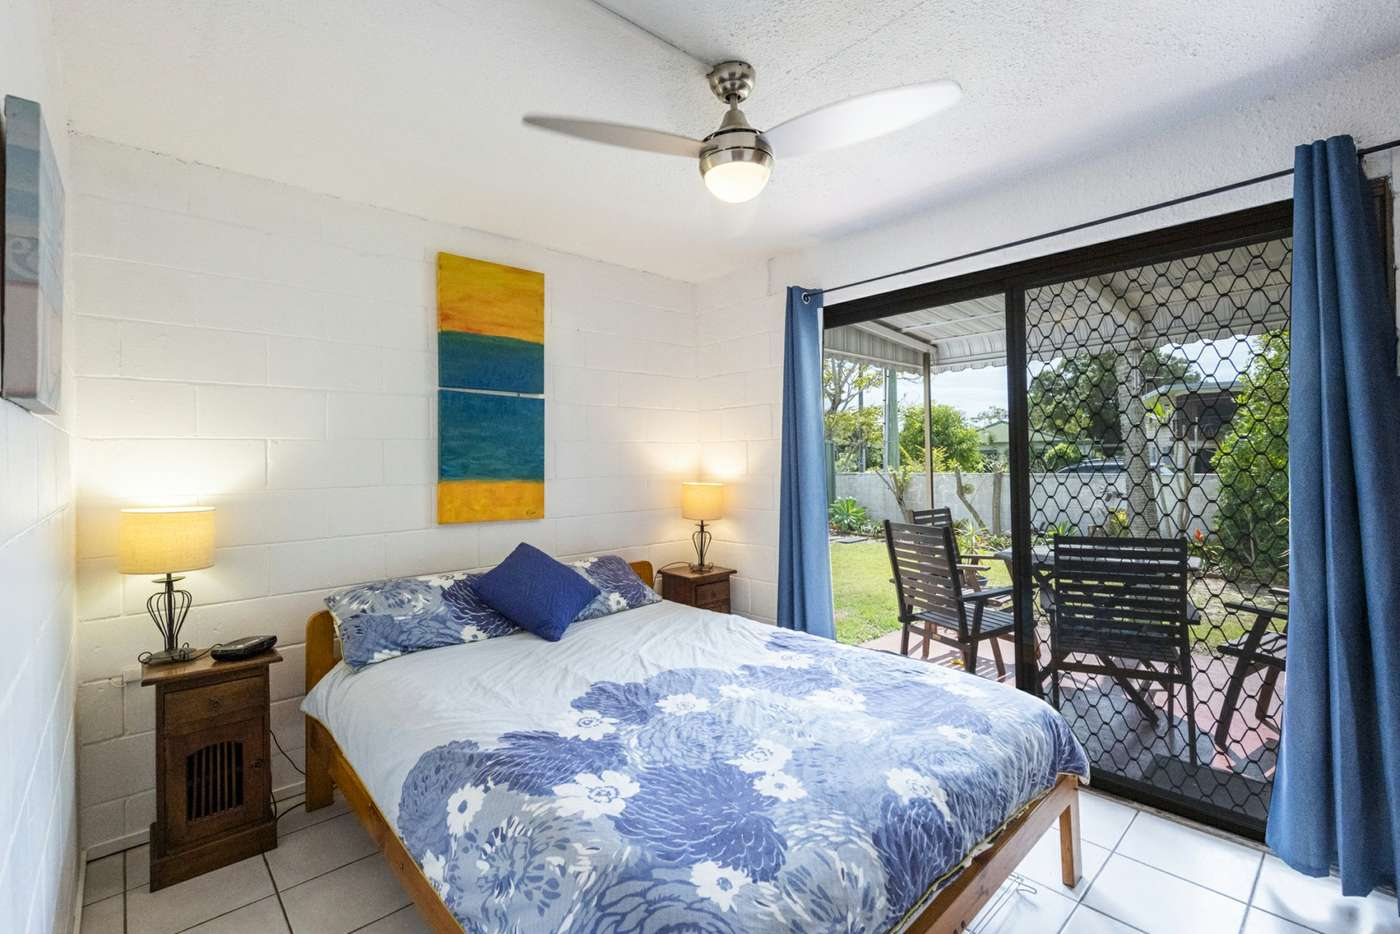 Seventh view of Homely unit listing, 1/4 Spenser Street, Iluka NSW 2466